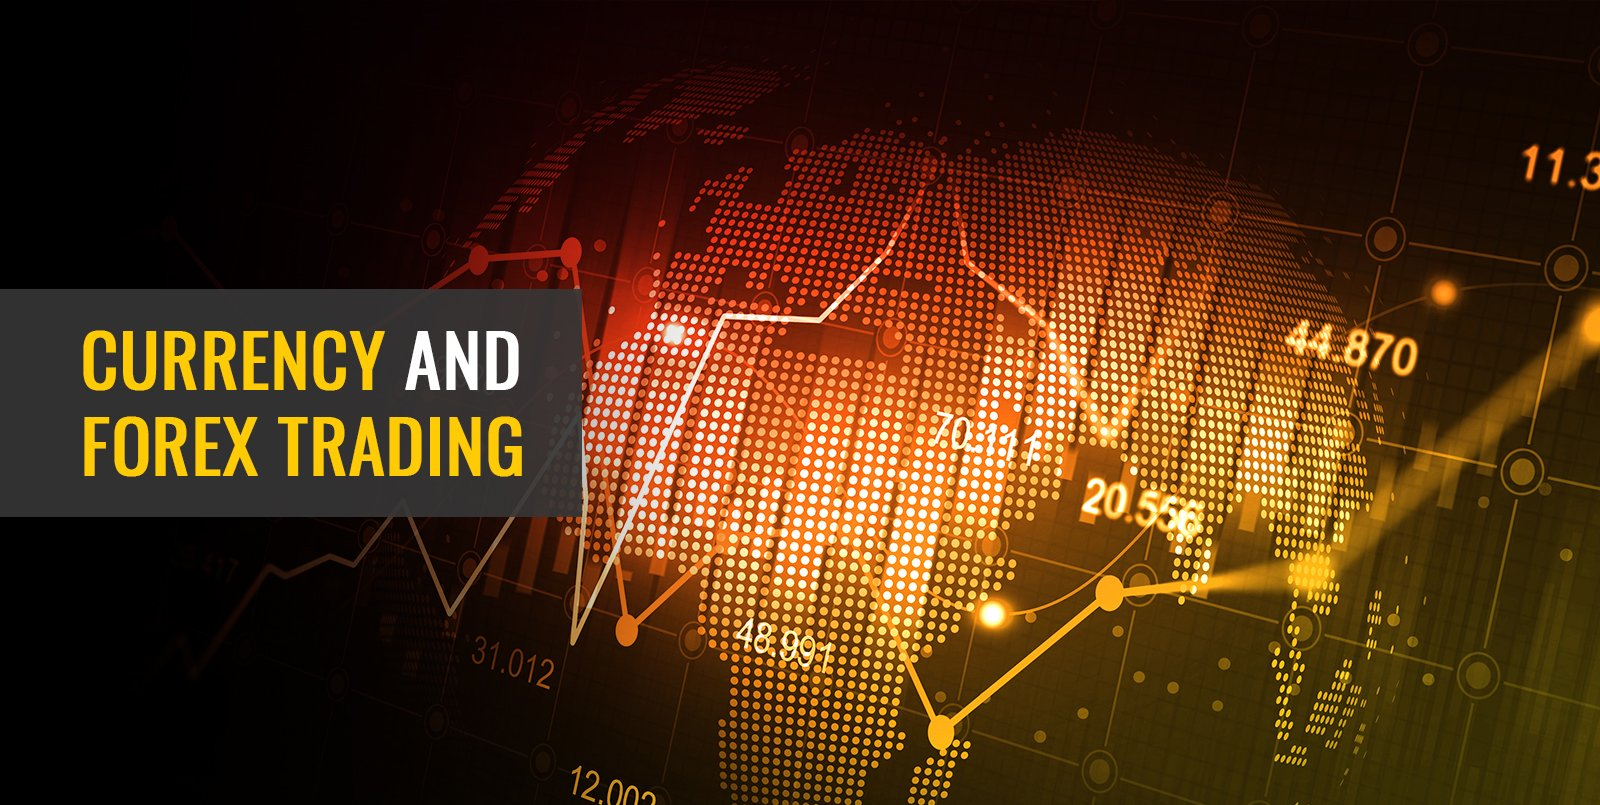 CURRENCY AND FOREX TRADING